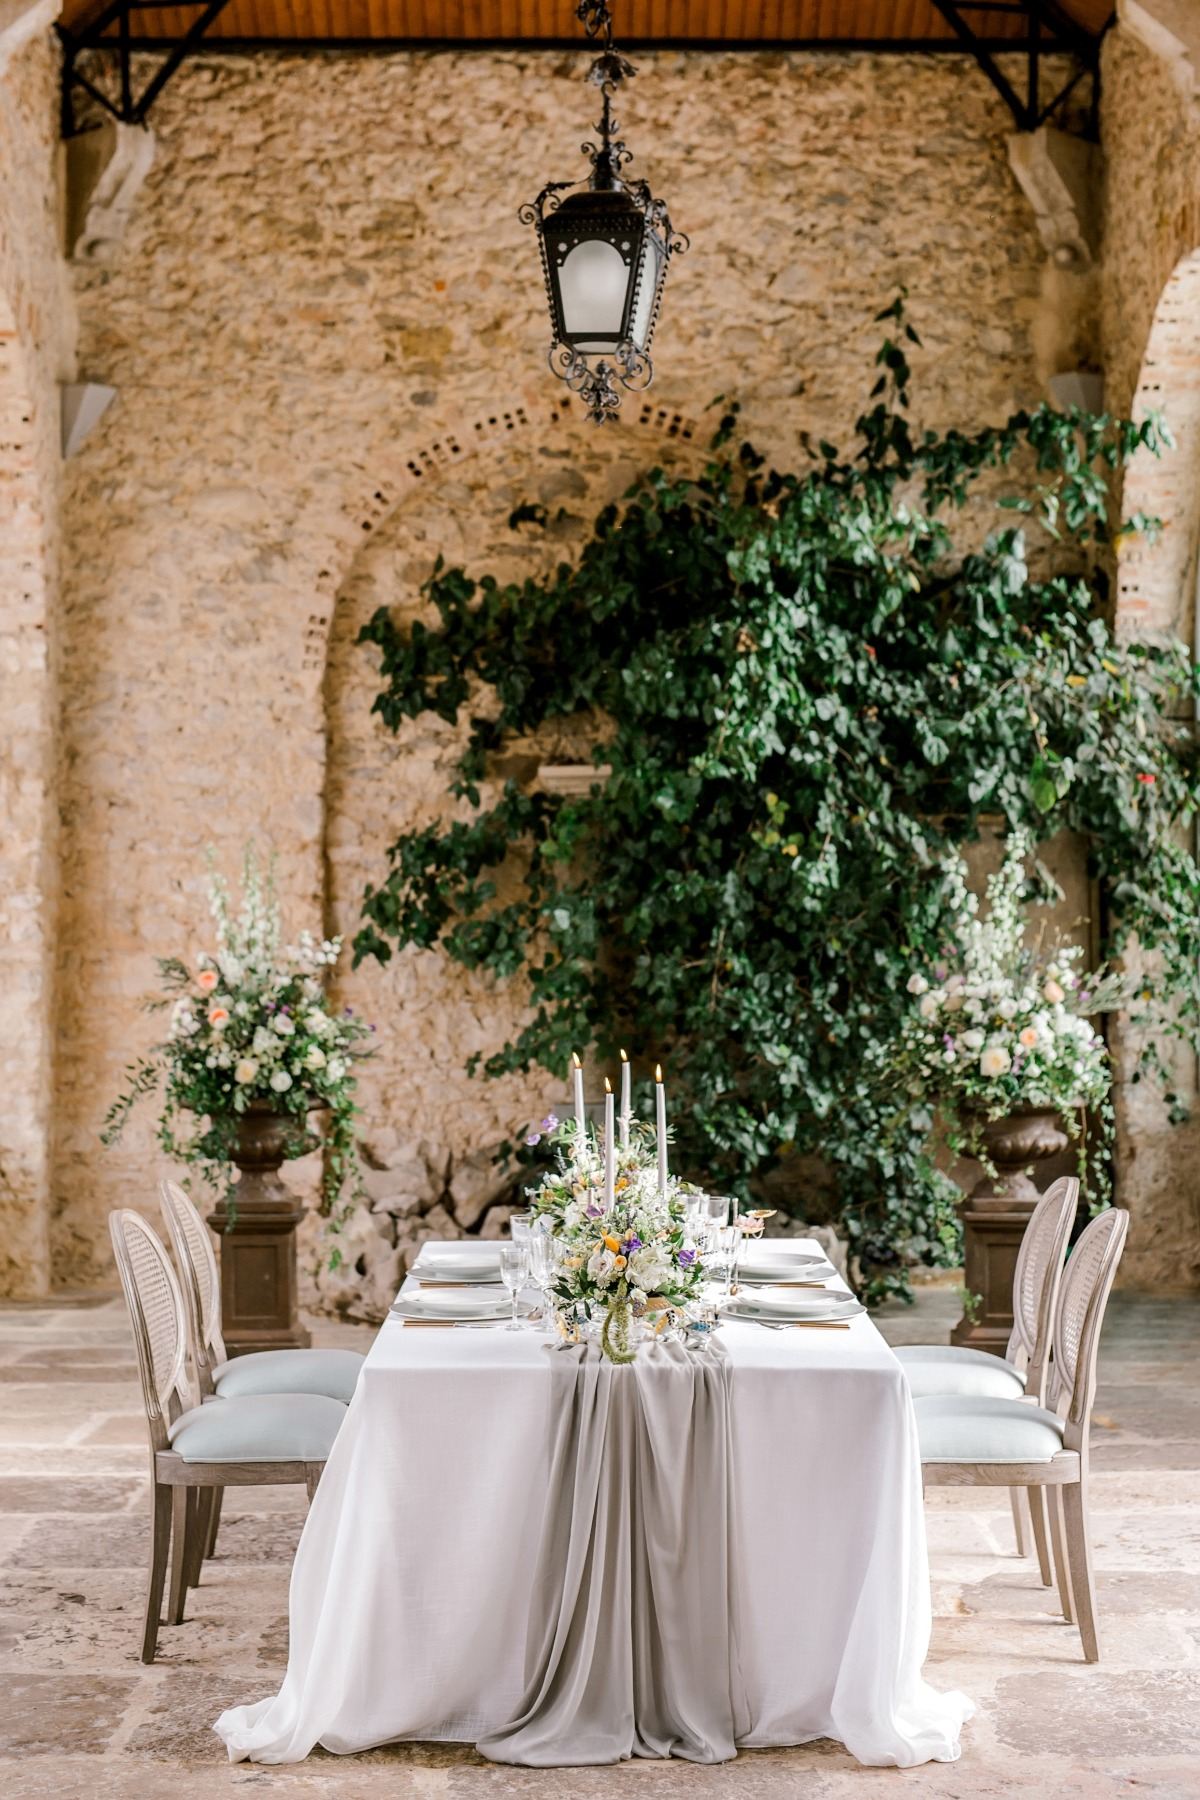 posh wedding reception at castle in Portugal